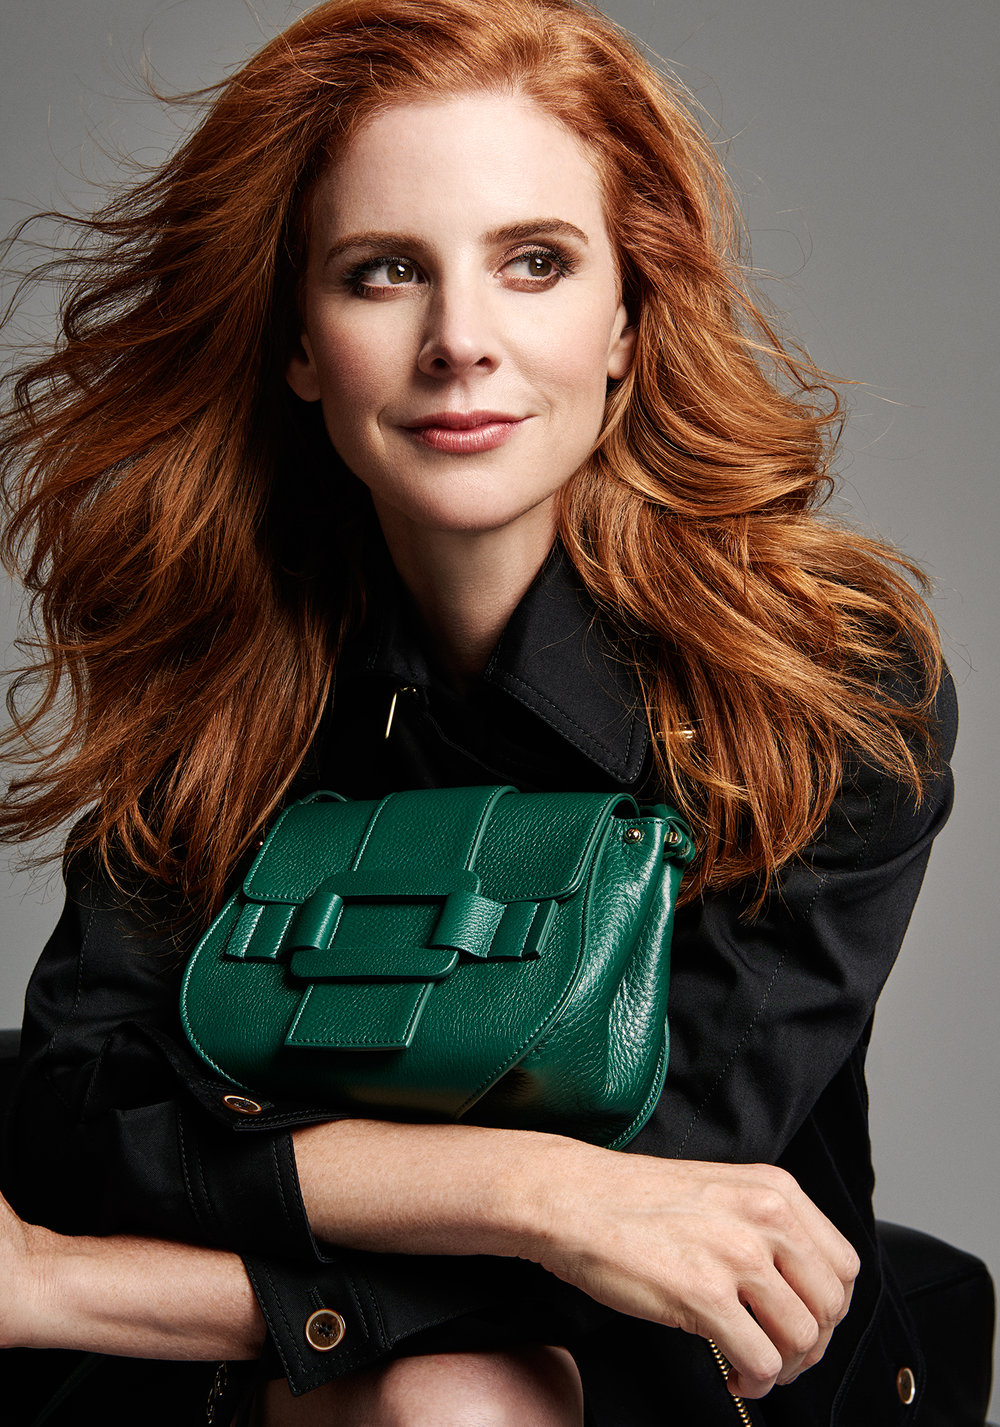 Sarah-Rafferty-Shot-5_134_v1.jpg